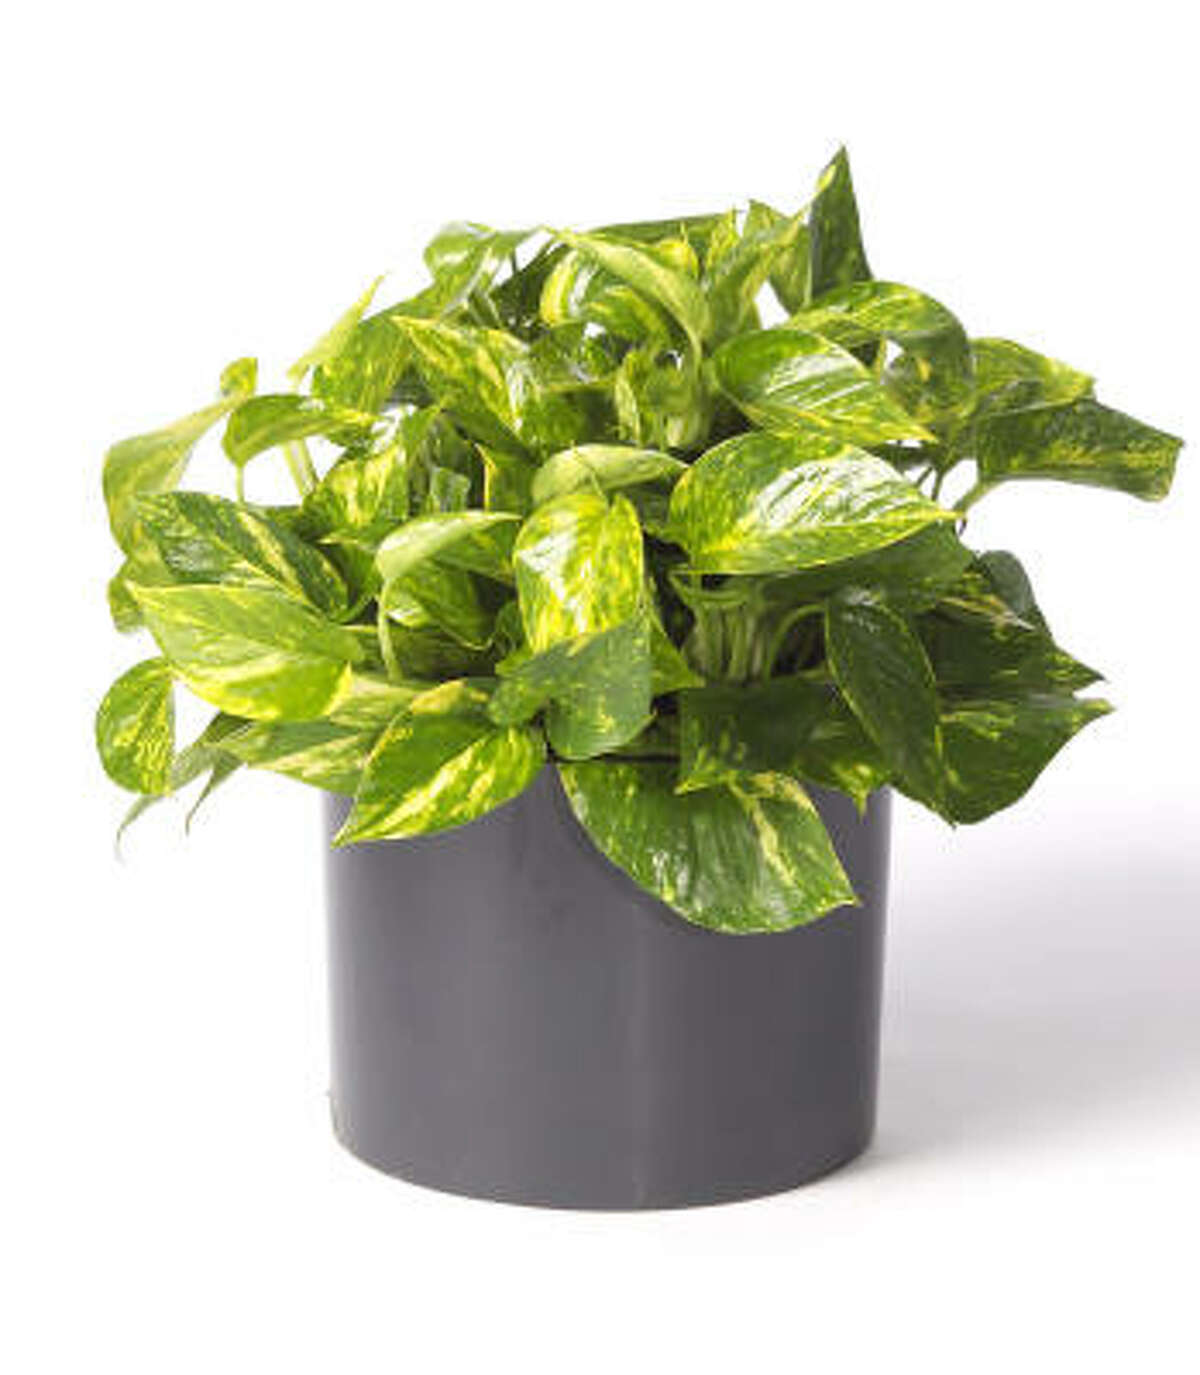 Golden pothos or devil's ivy, Scindapsus aureus, is an easy-care vining plant that will grow in any light except direct hot sun or total darkness. 8 tips to keeping houseplants happy | Top 10 houseplants explained | Plants that clean indoor air | Succulents for containers | Submit your garden photos | Houston Plant Database | HoustonGrows.com